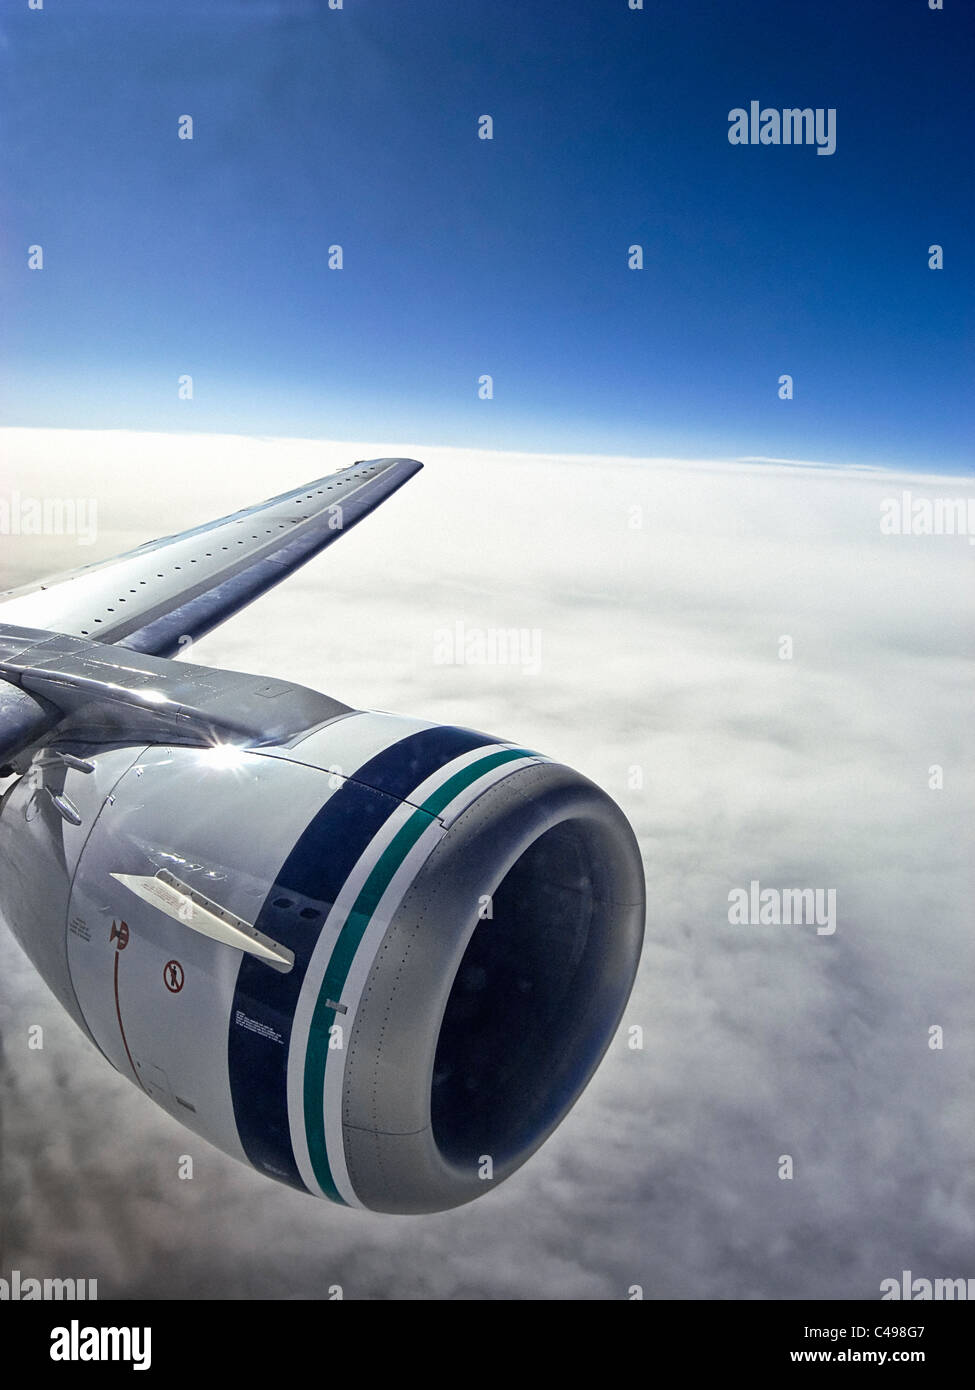 Jet engine of Boeing 737-400 commercial airliner - Stock Image